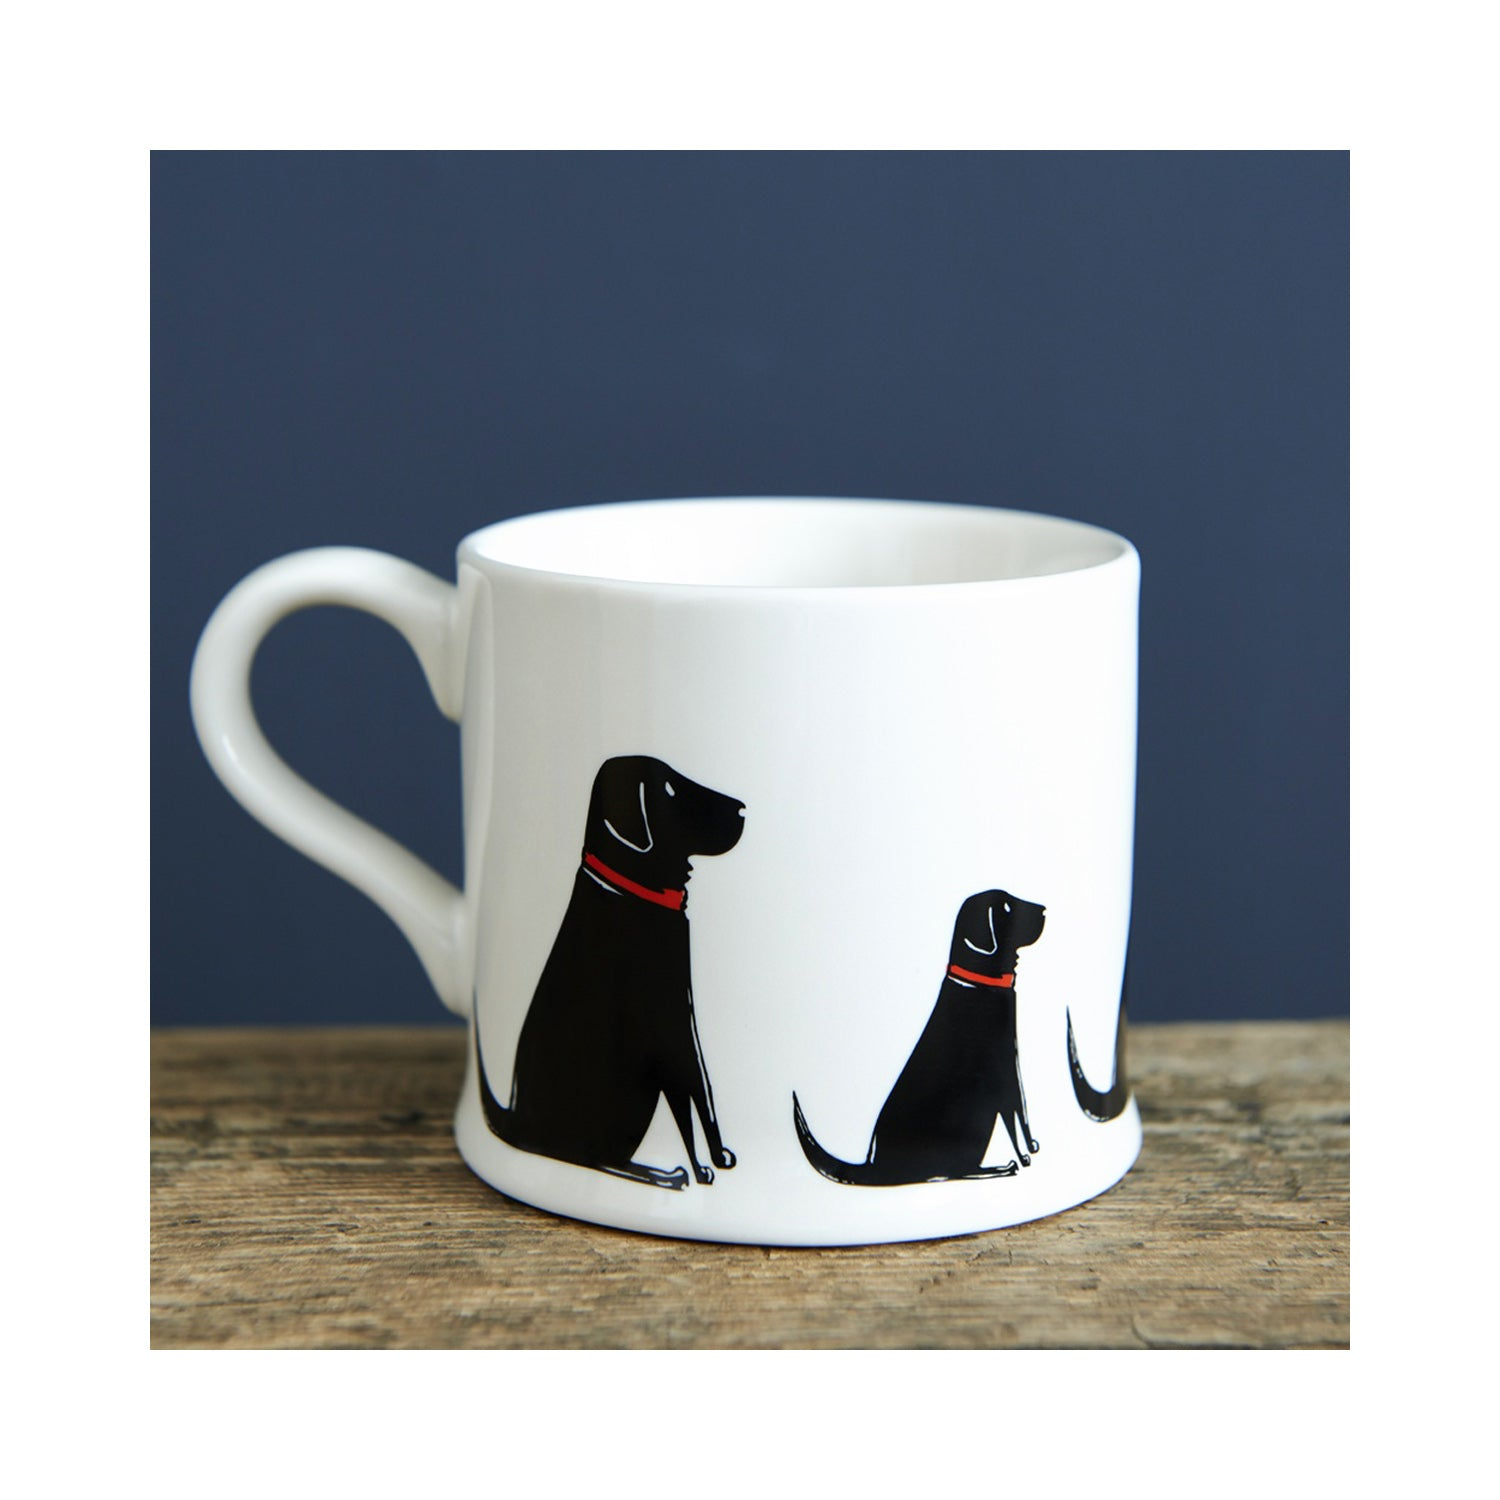 Dog Lover Gifts available at Dog Krazy Gifts - William The Black Labrador Mug by Sweet William - part of the Labrador collection of Dog Lovers Gifts available from Dog Krazy Gifts